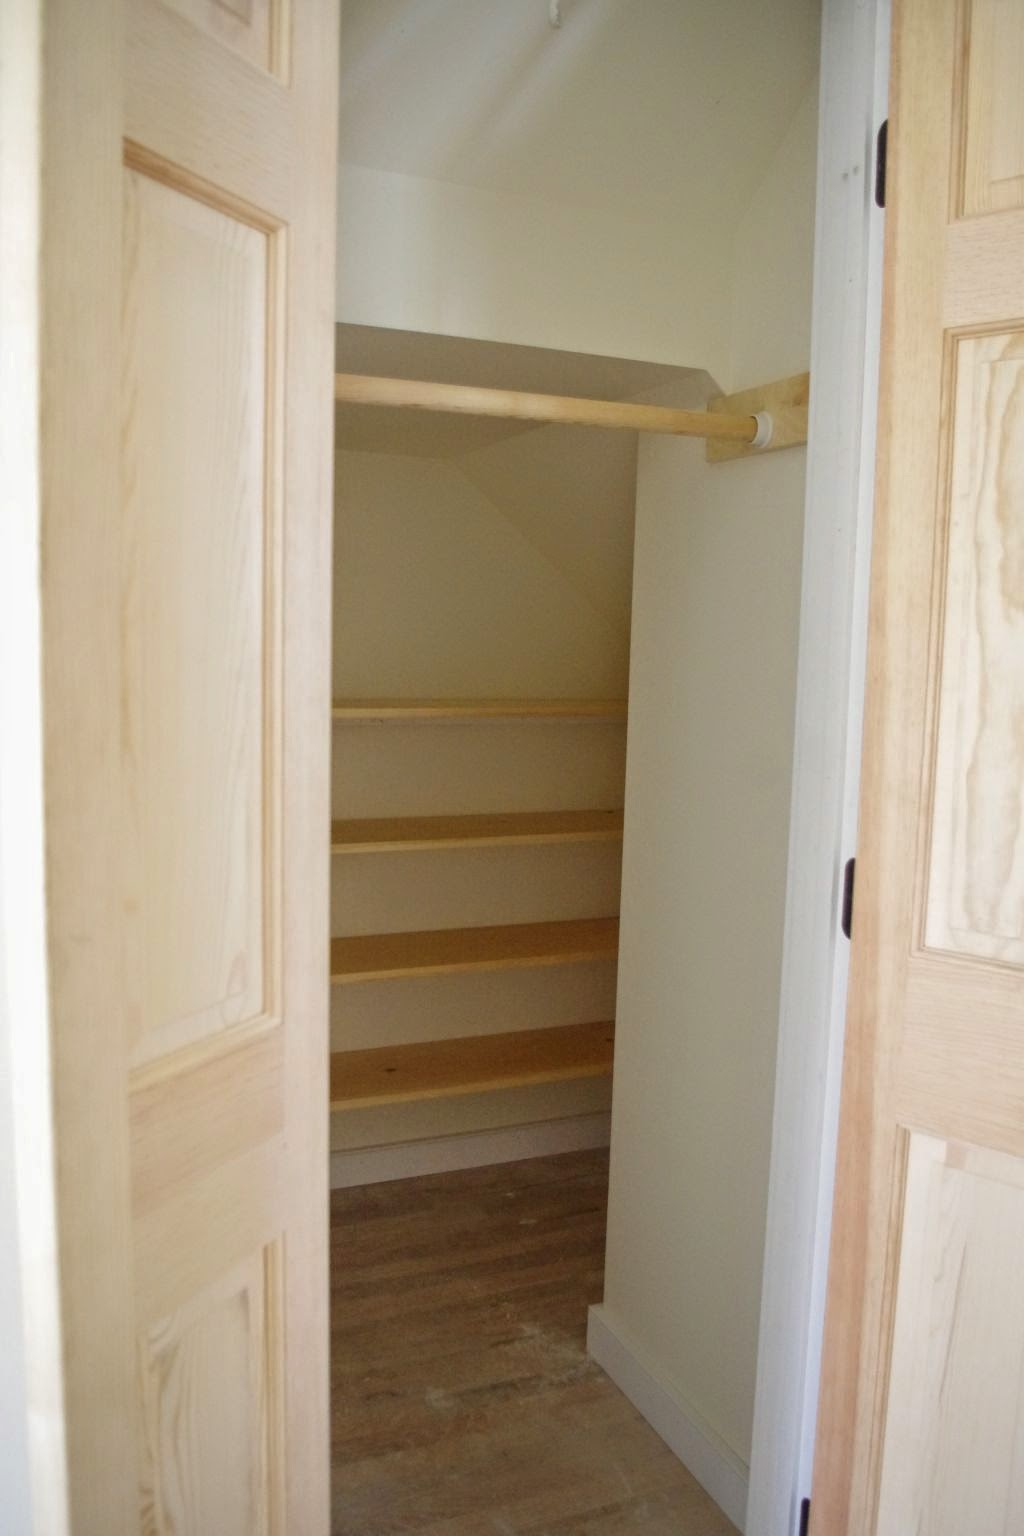 shelving ideas for bedroom closets - The New House Next Door Stair Railing and Closet Shelving